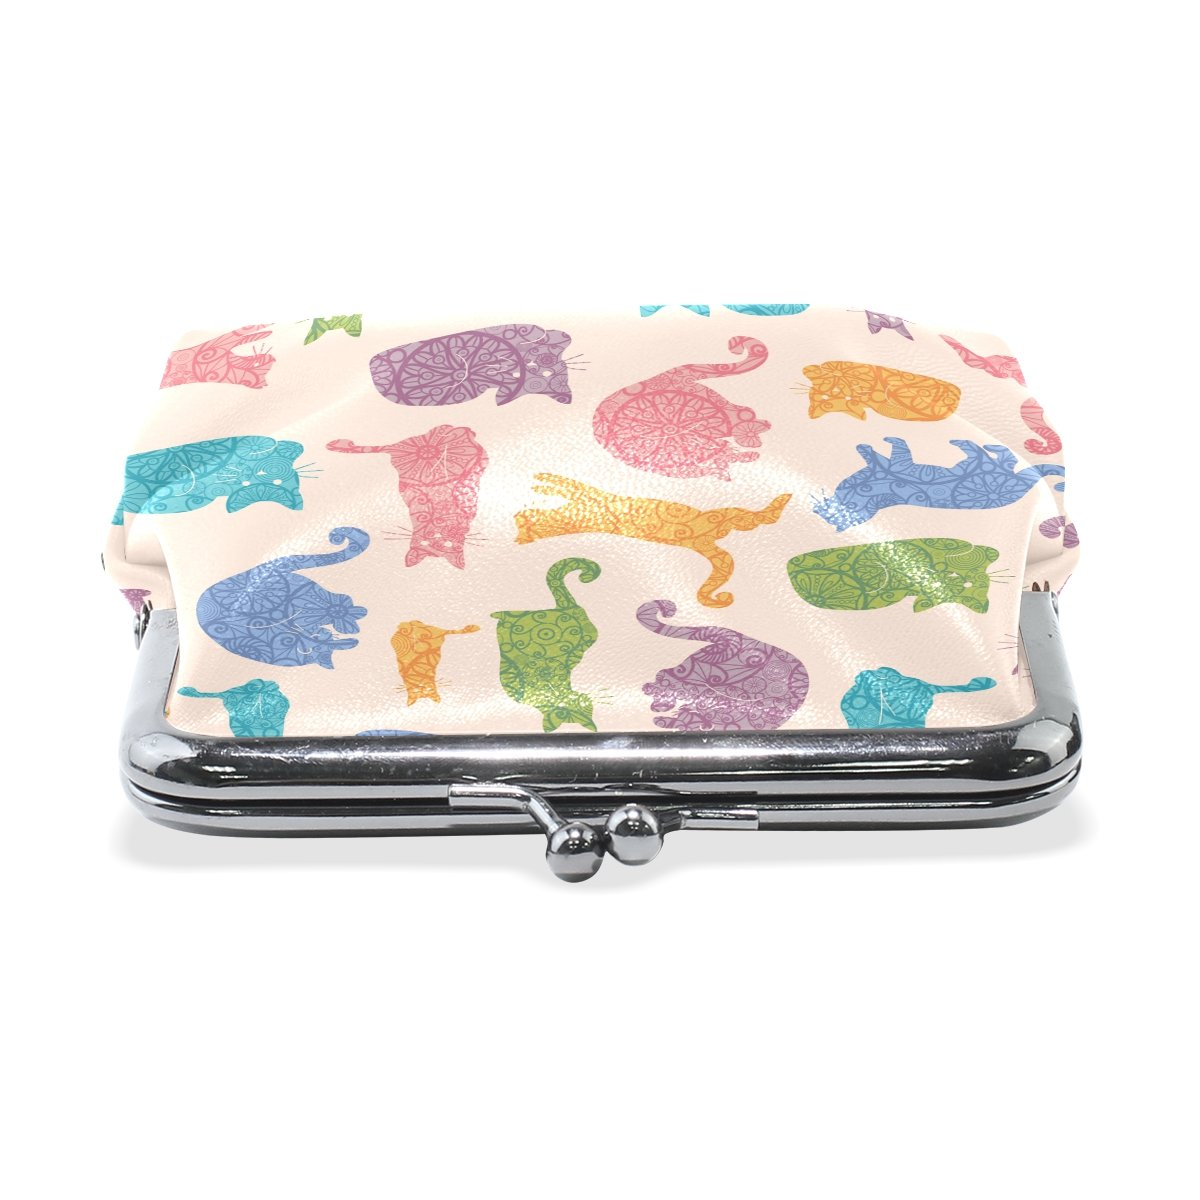 Sunlome Cats Coin Purse Change Cash Bag Small Purse Wallets for Women Girl